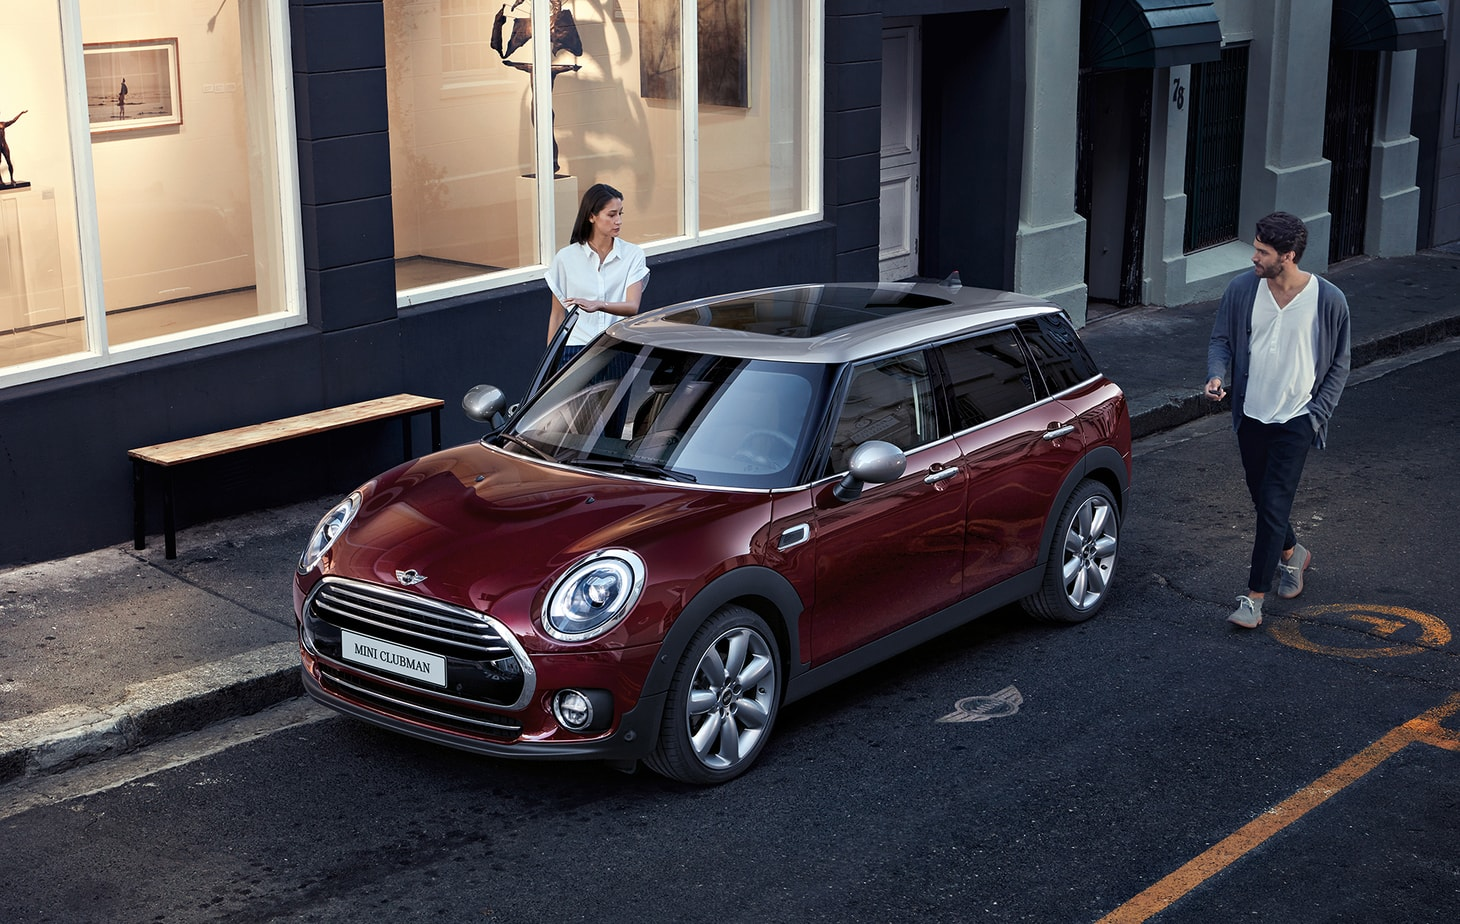 The Color Club - finedata A0234100 0 MINI CLUBMAN